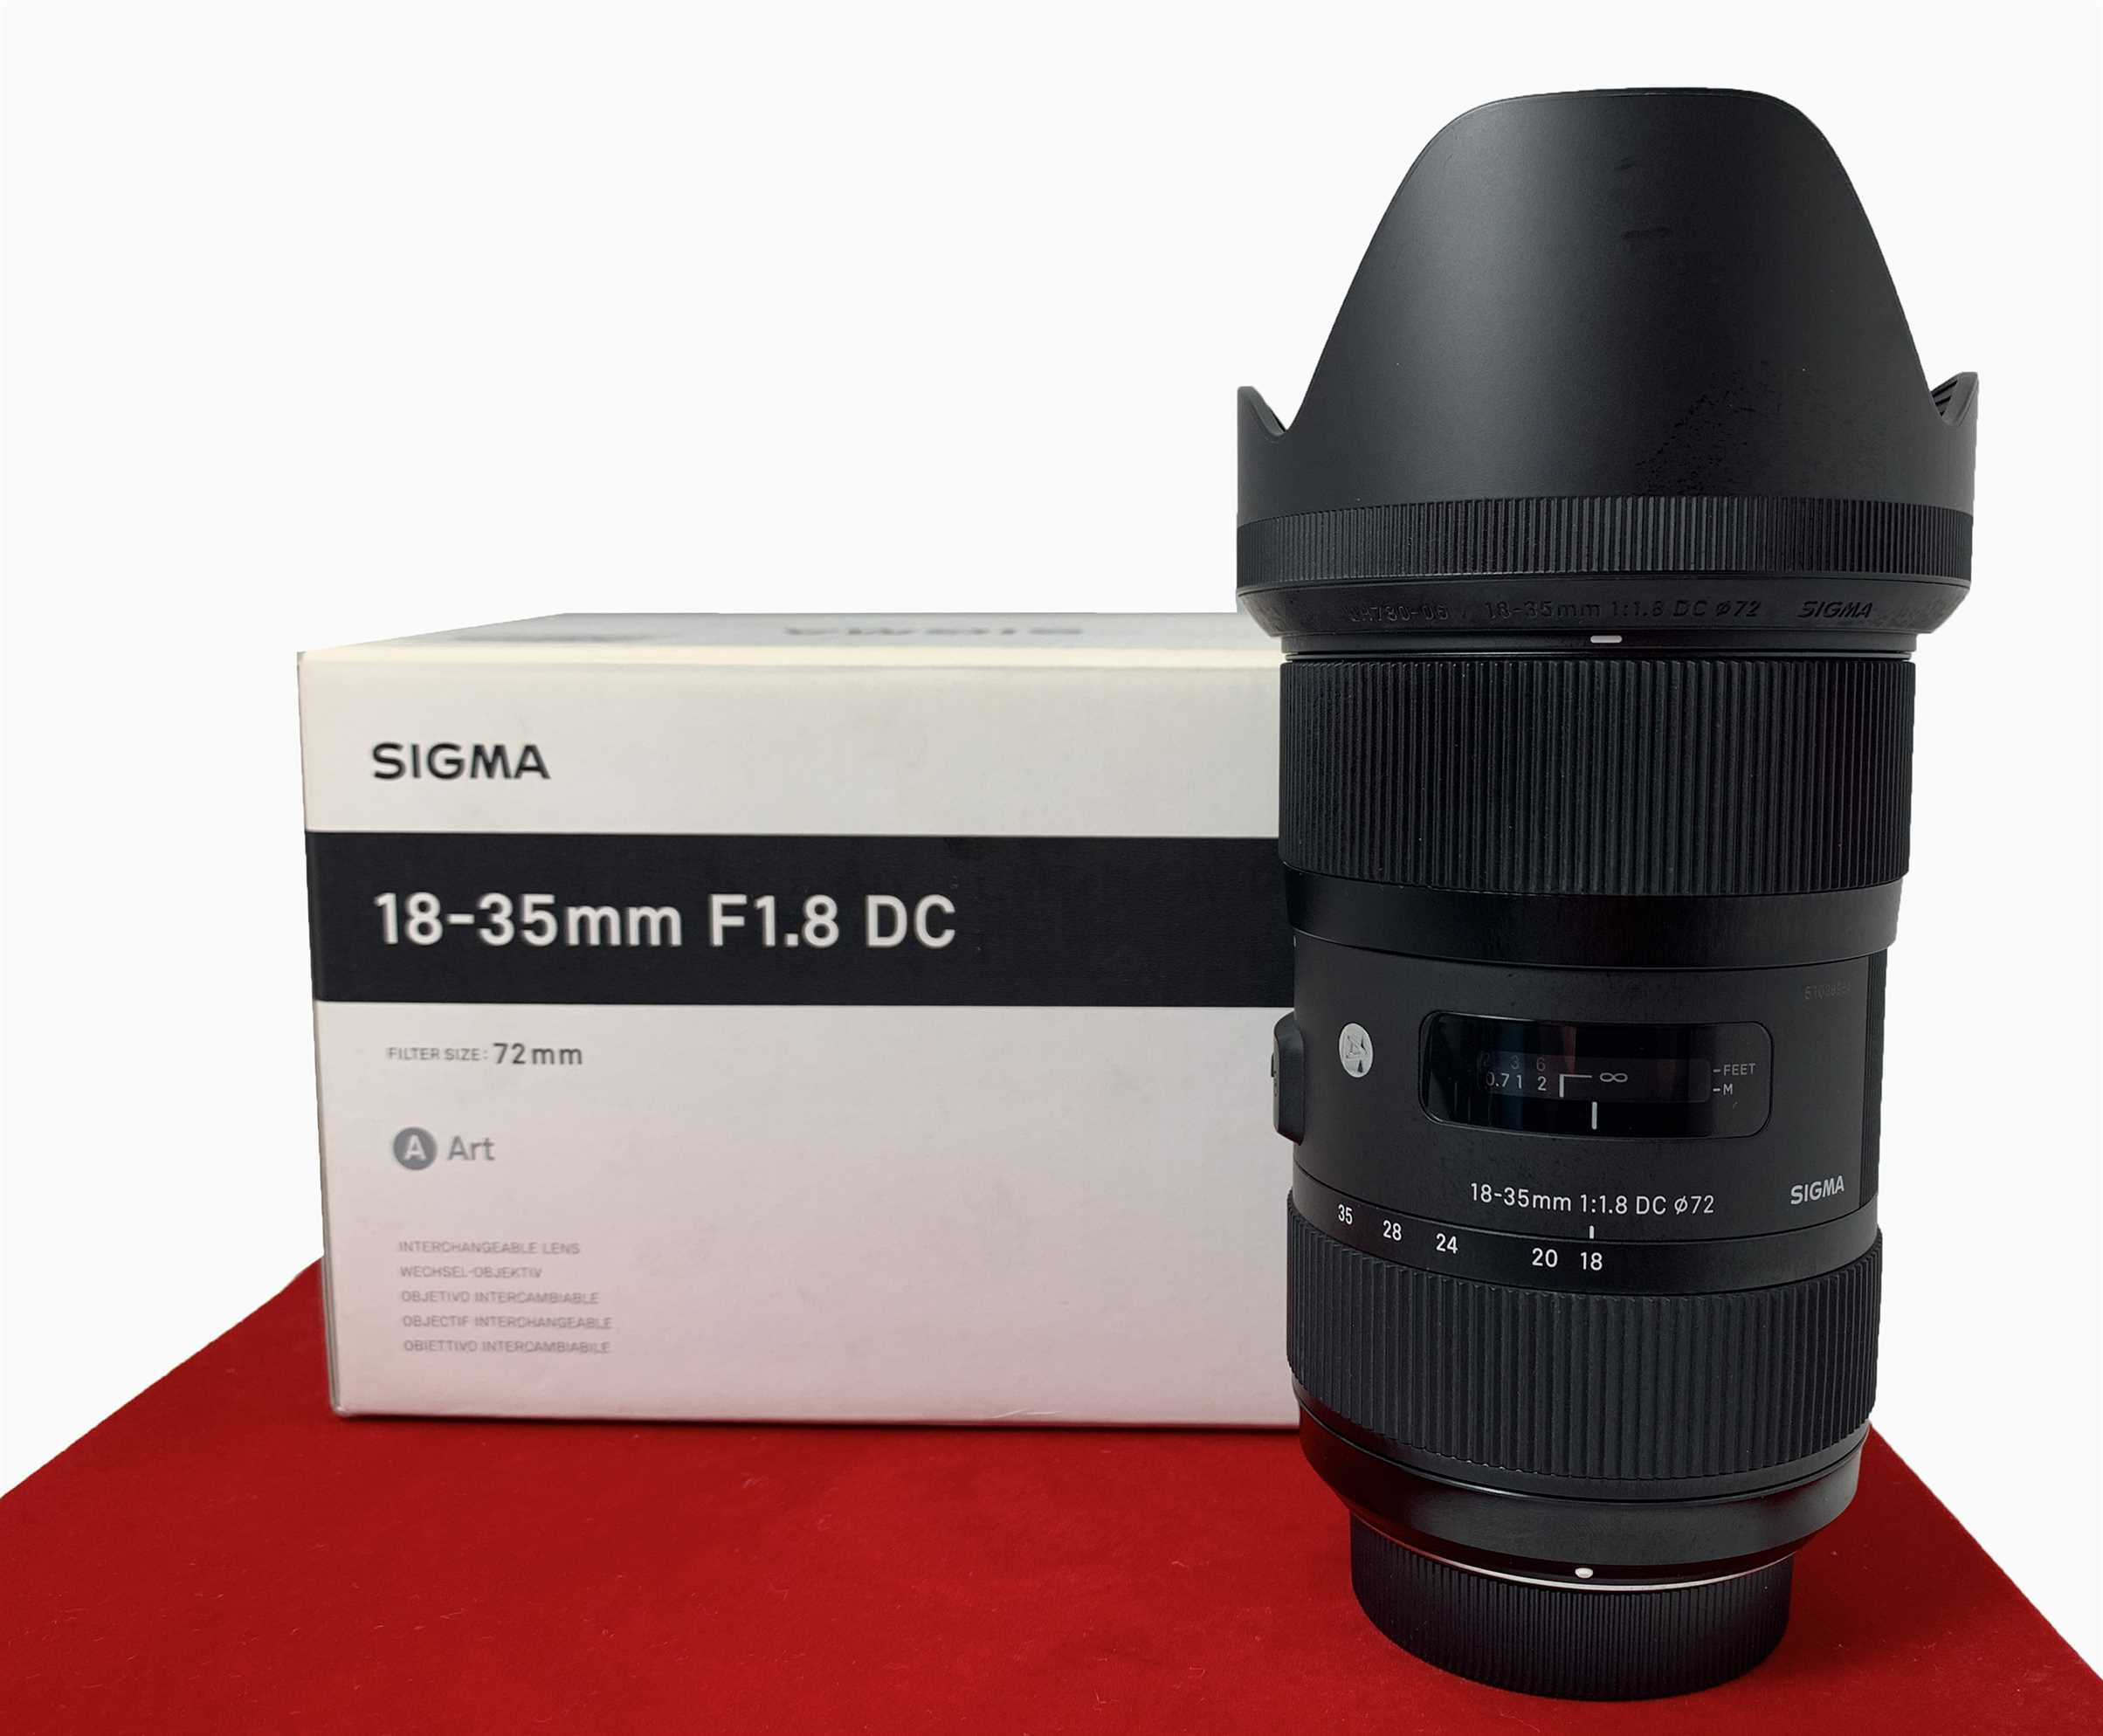 [USED-PJ33] Sigma 18-35MM F1.8 DC ART Lens For (Nikon Mount), 95% Like New Condition (S/N 51038984)